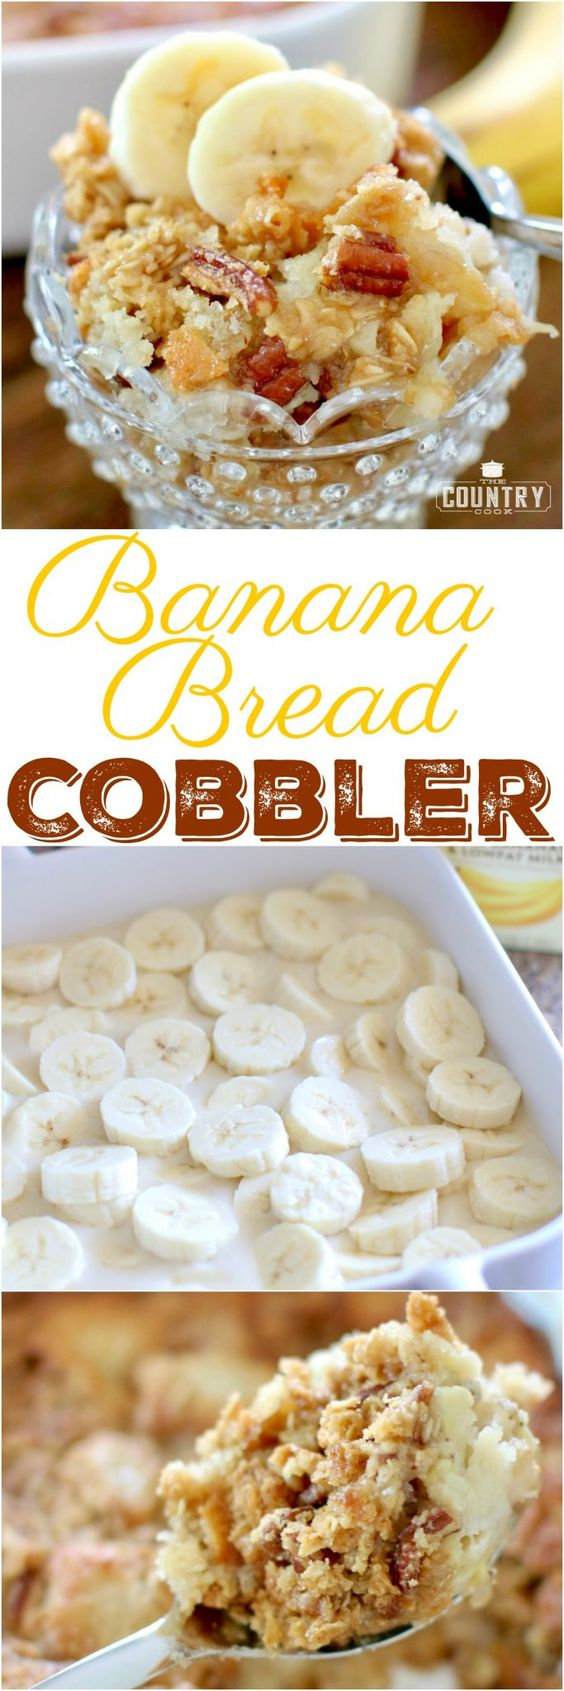 Southern Banana Bread Cobbler recipe from The Country Cook with @SirBananas #ad #sirbananas